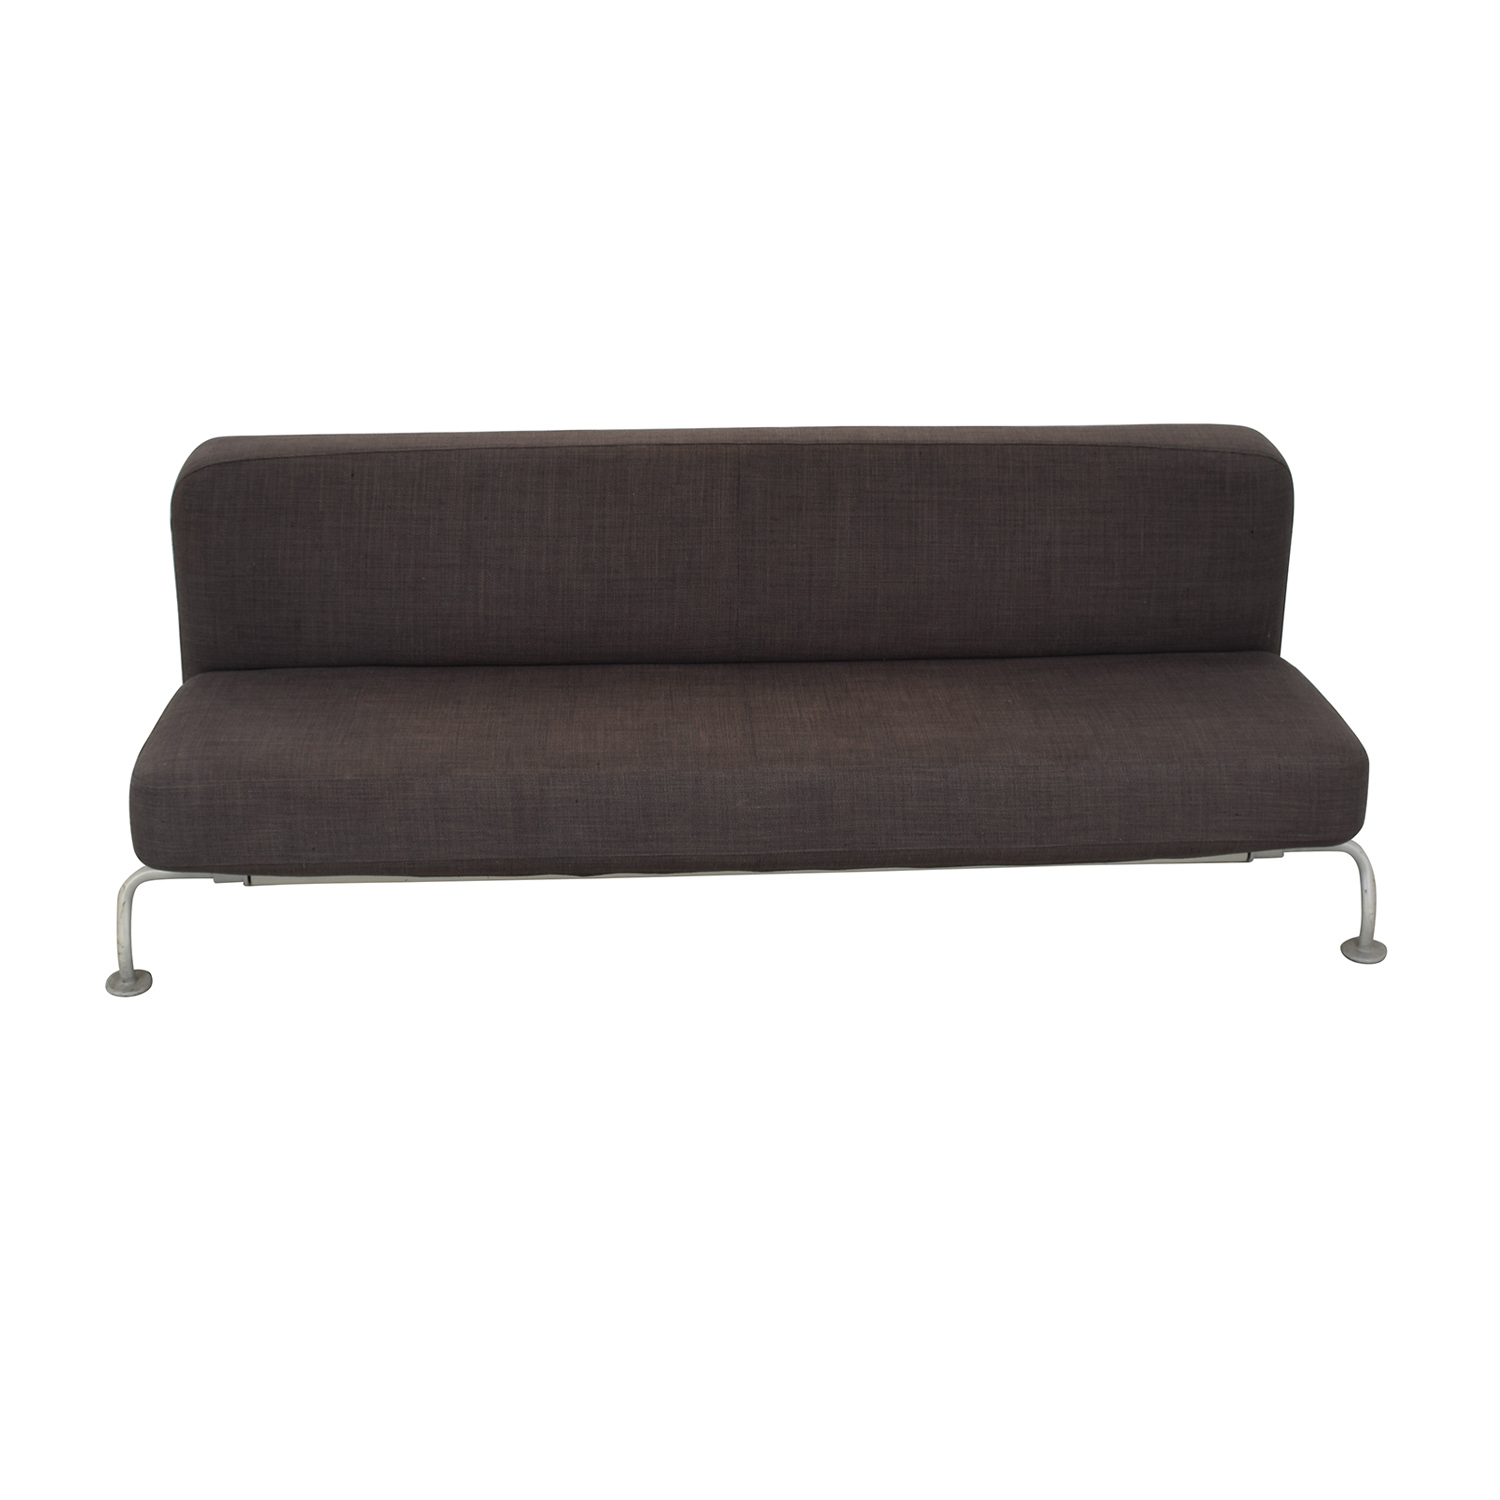 B&B Italia B&B Italia Lunar Sofa Bed Sofa Beds